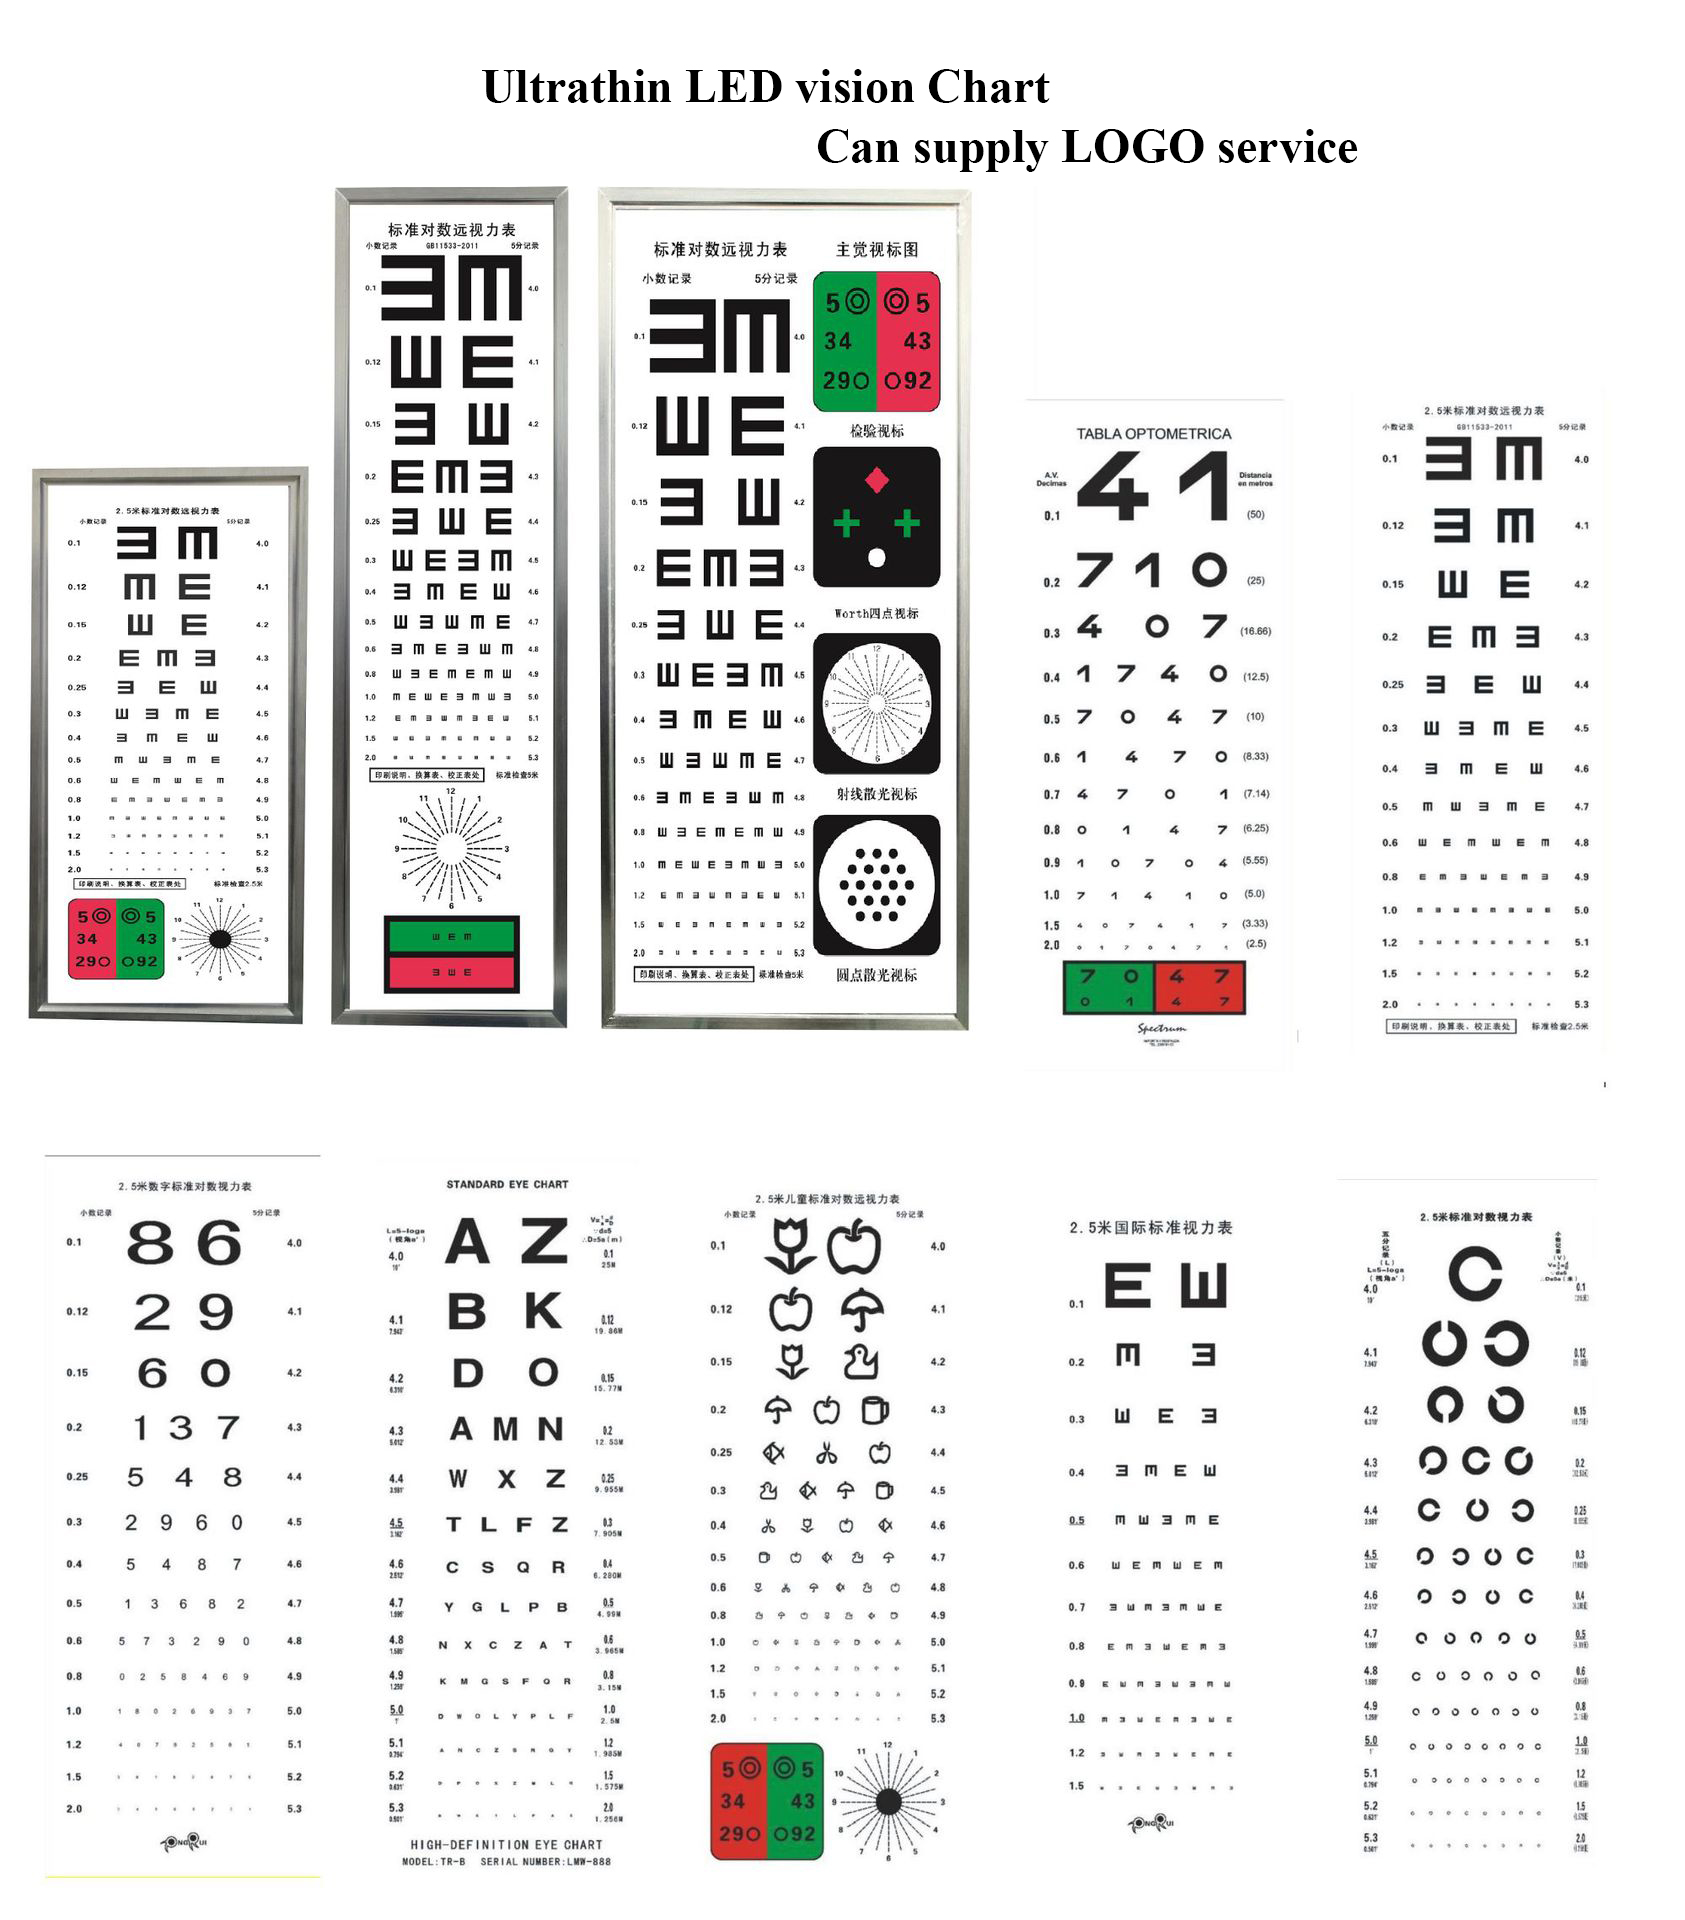 2.5M LED ultrathin Vision chart